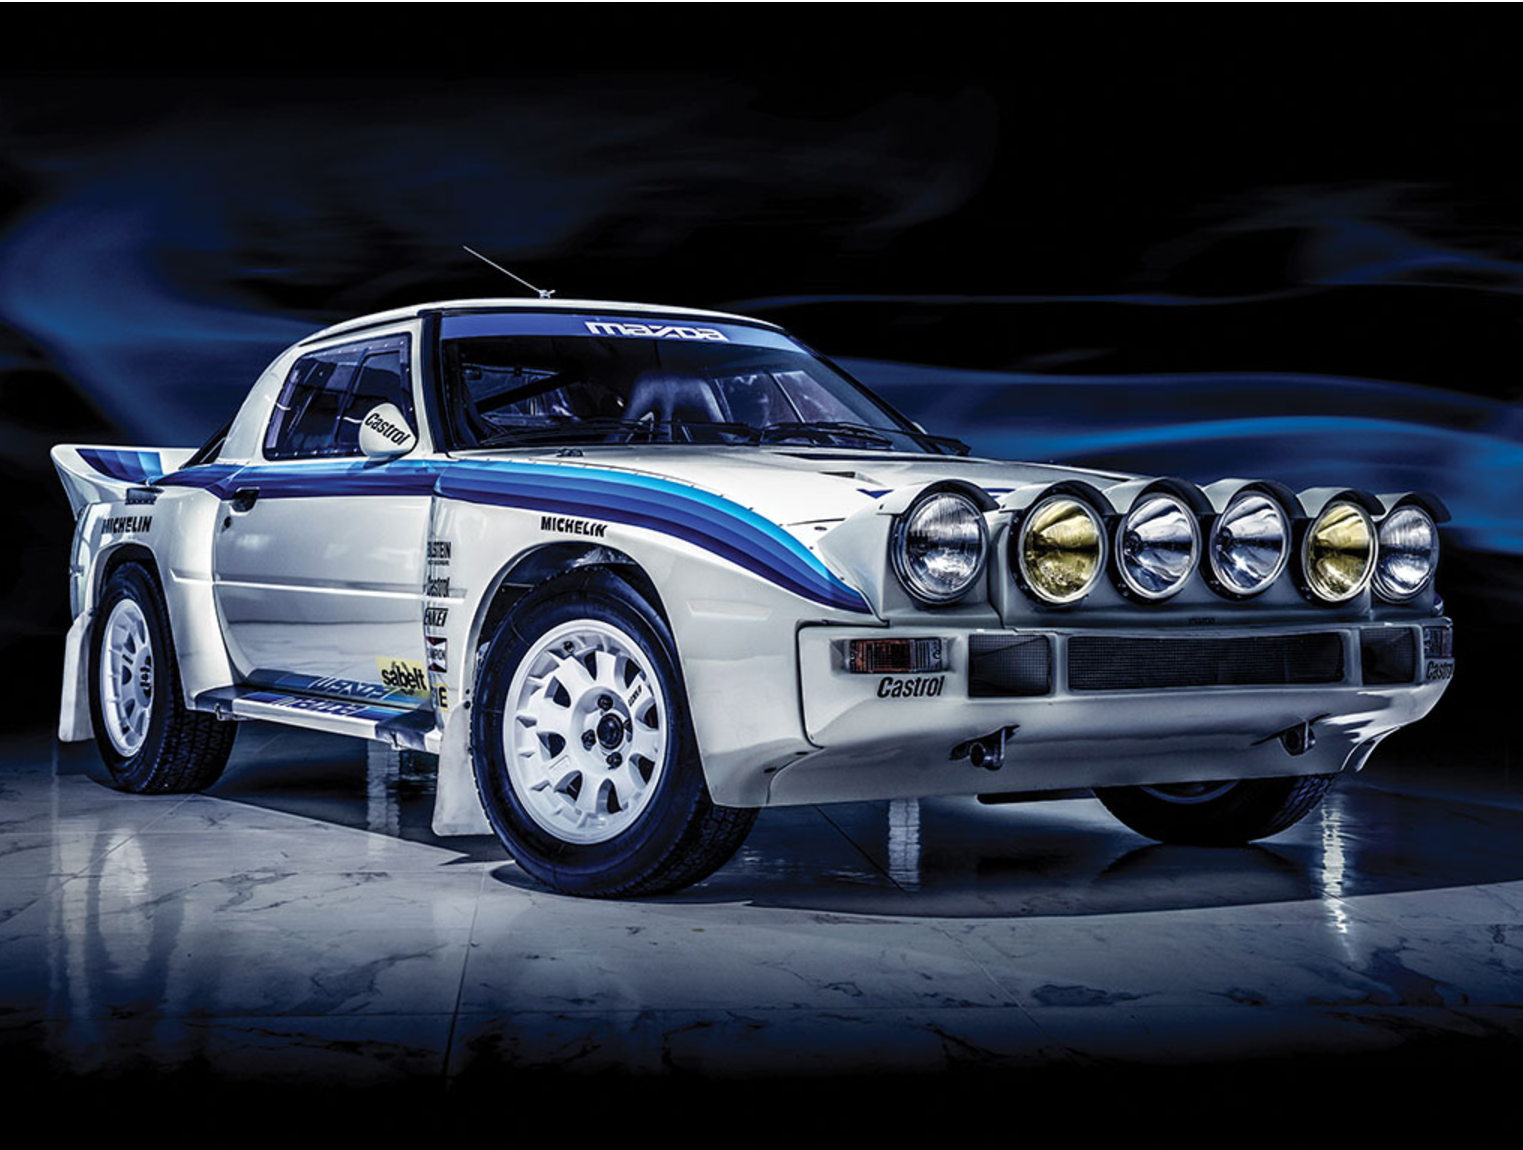 This Unbelievable Mazda Rx 7 For Sale Is Probably The Only Unused Group B Car In The World Mazda Rx7 Rally Car Mazda